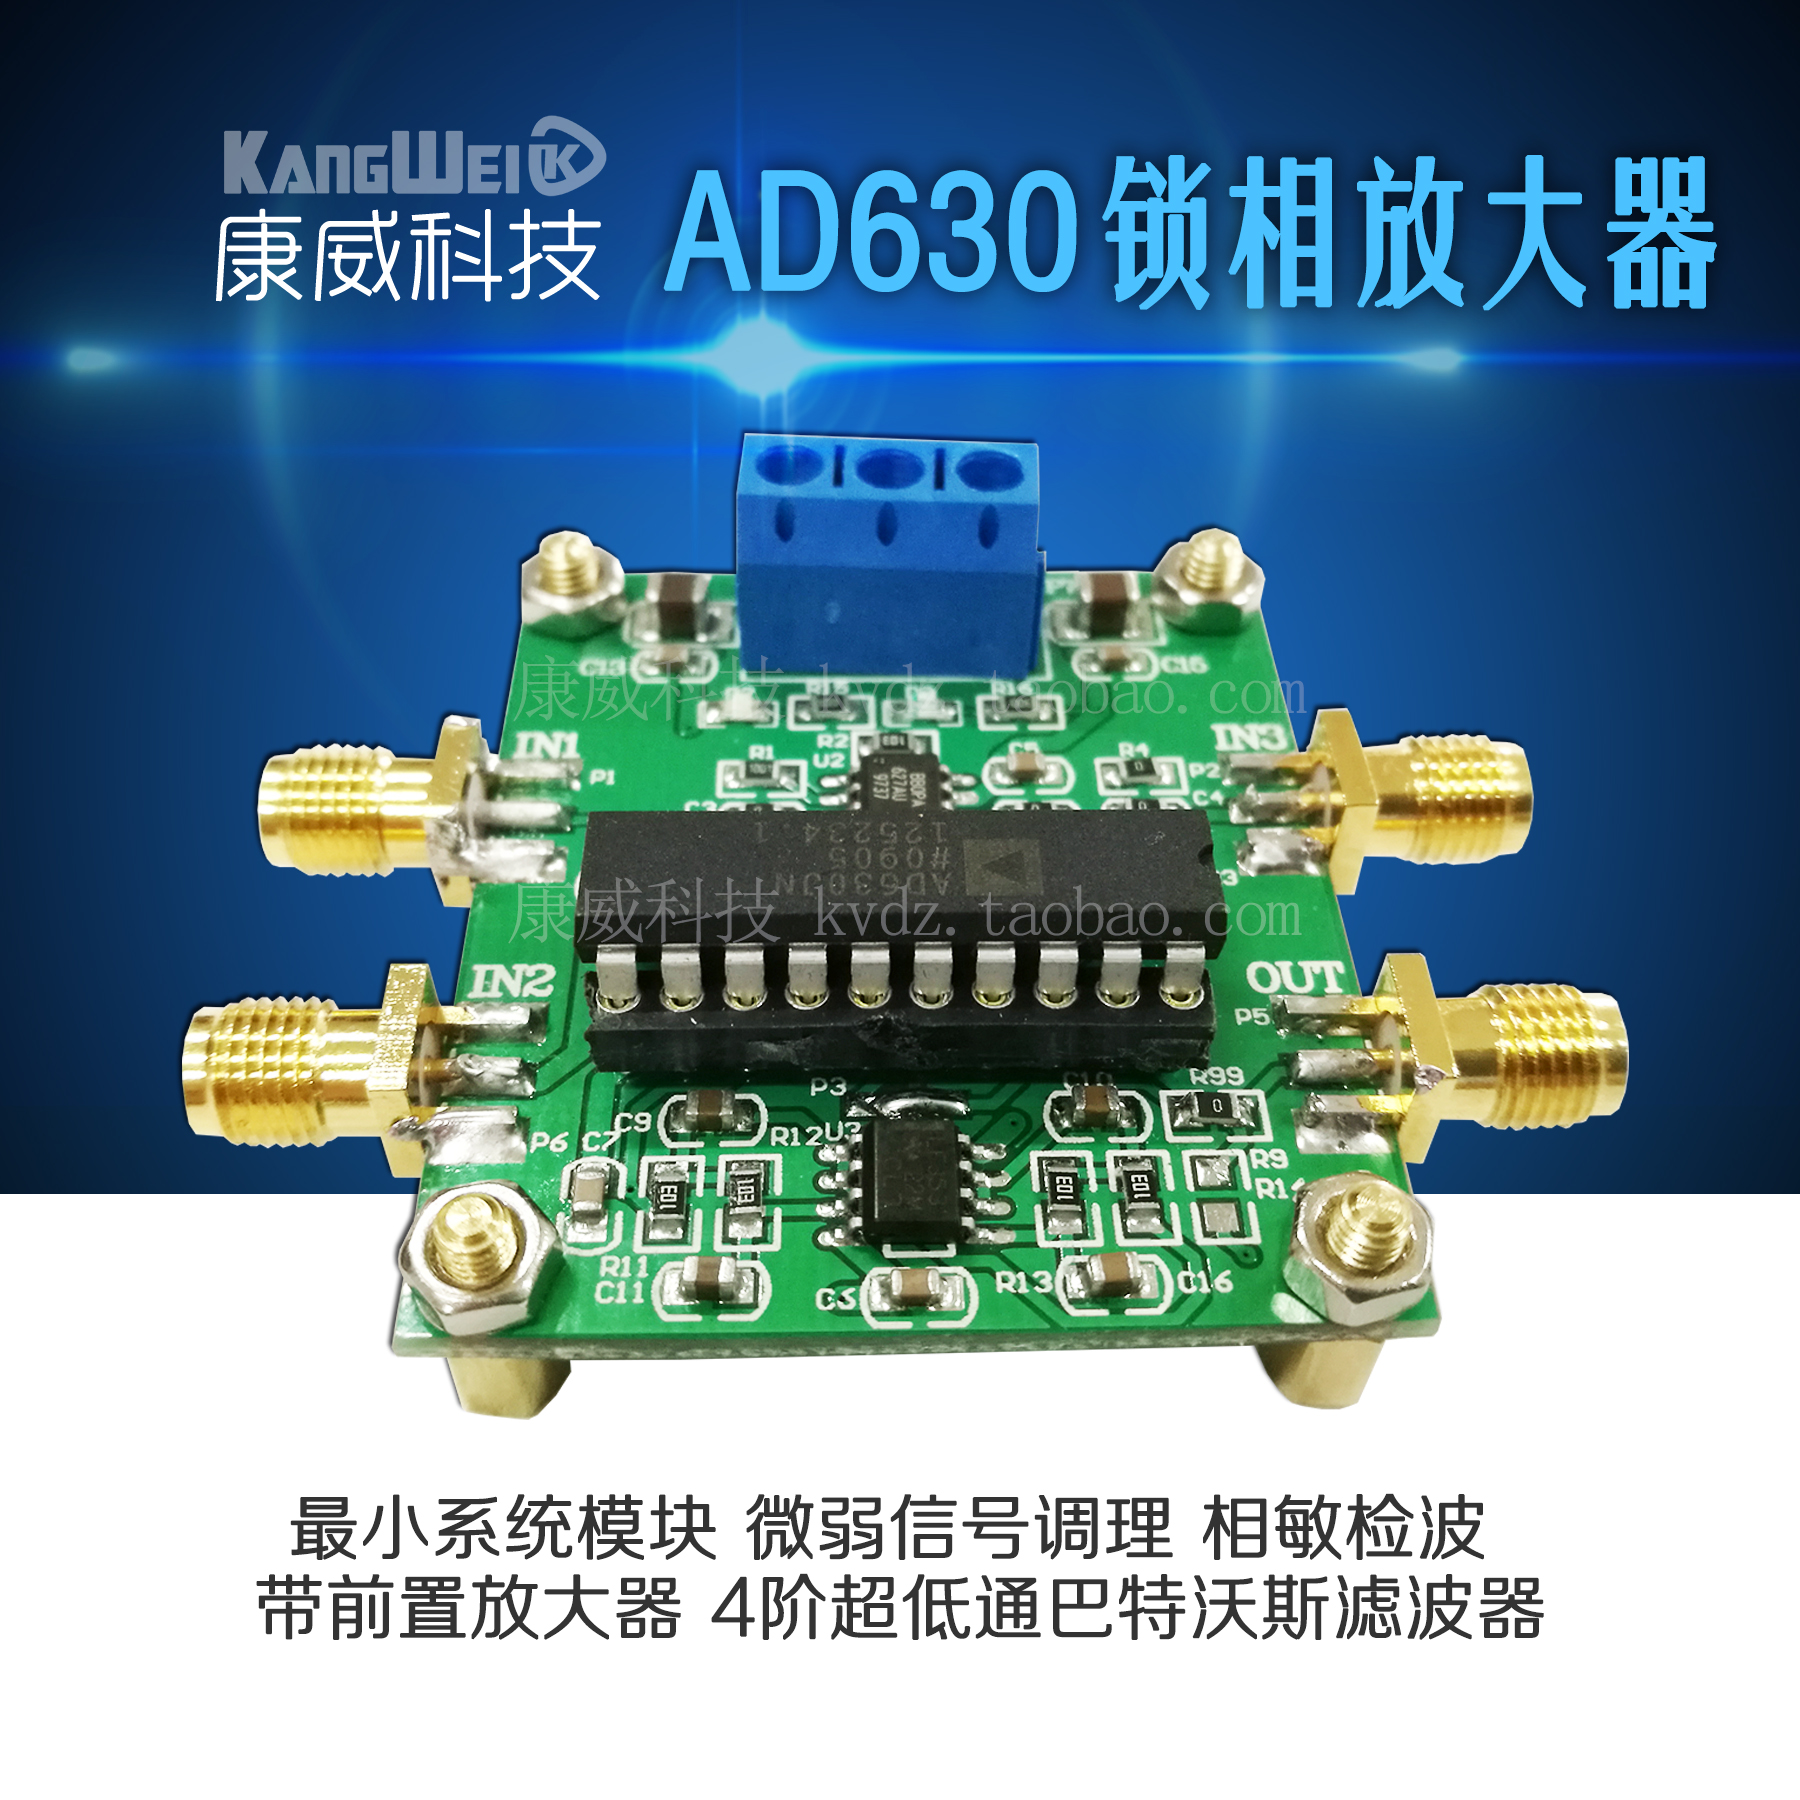 Phase-locked Amplifier AD630 Module Minimum System Phase Sensitive Detection Weak Signal Conditioning Balanced Modulation ароматизатор воздуха medisana ad 630